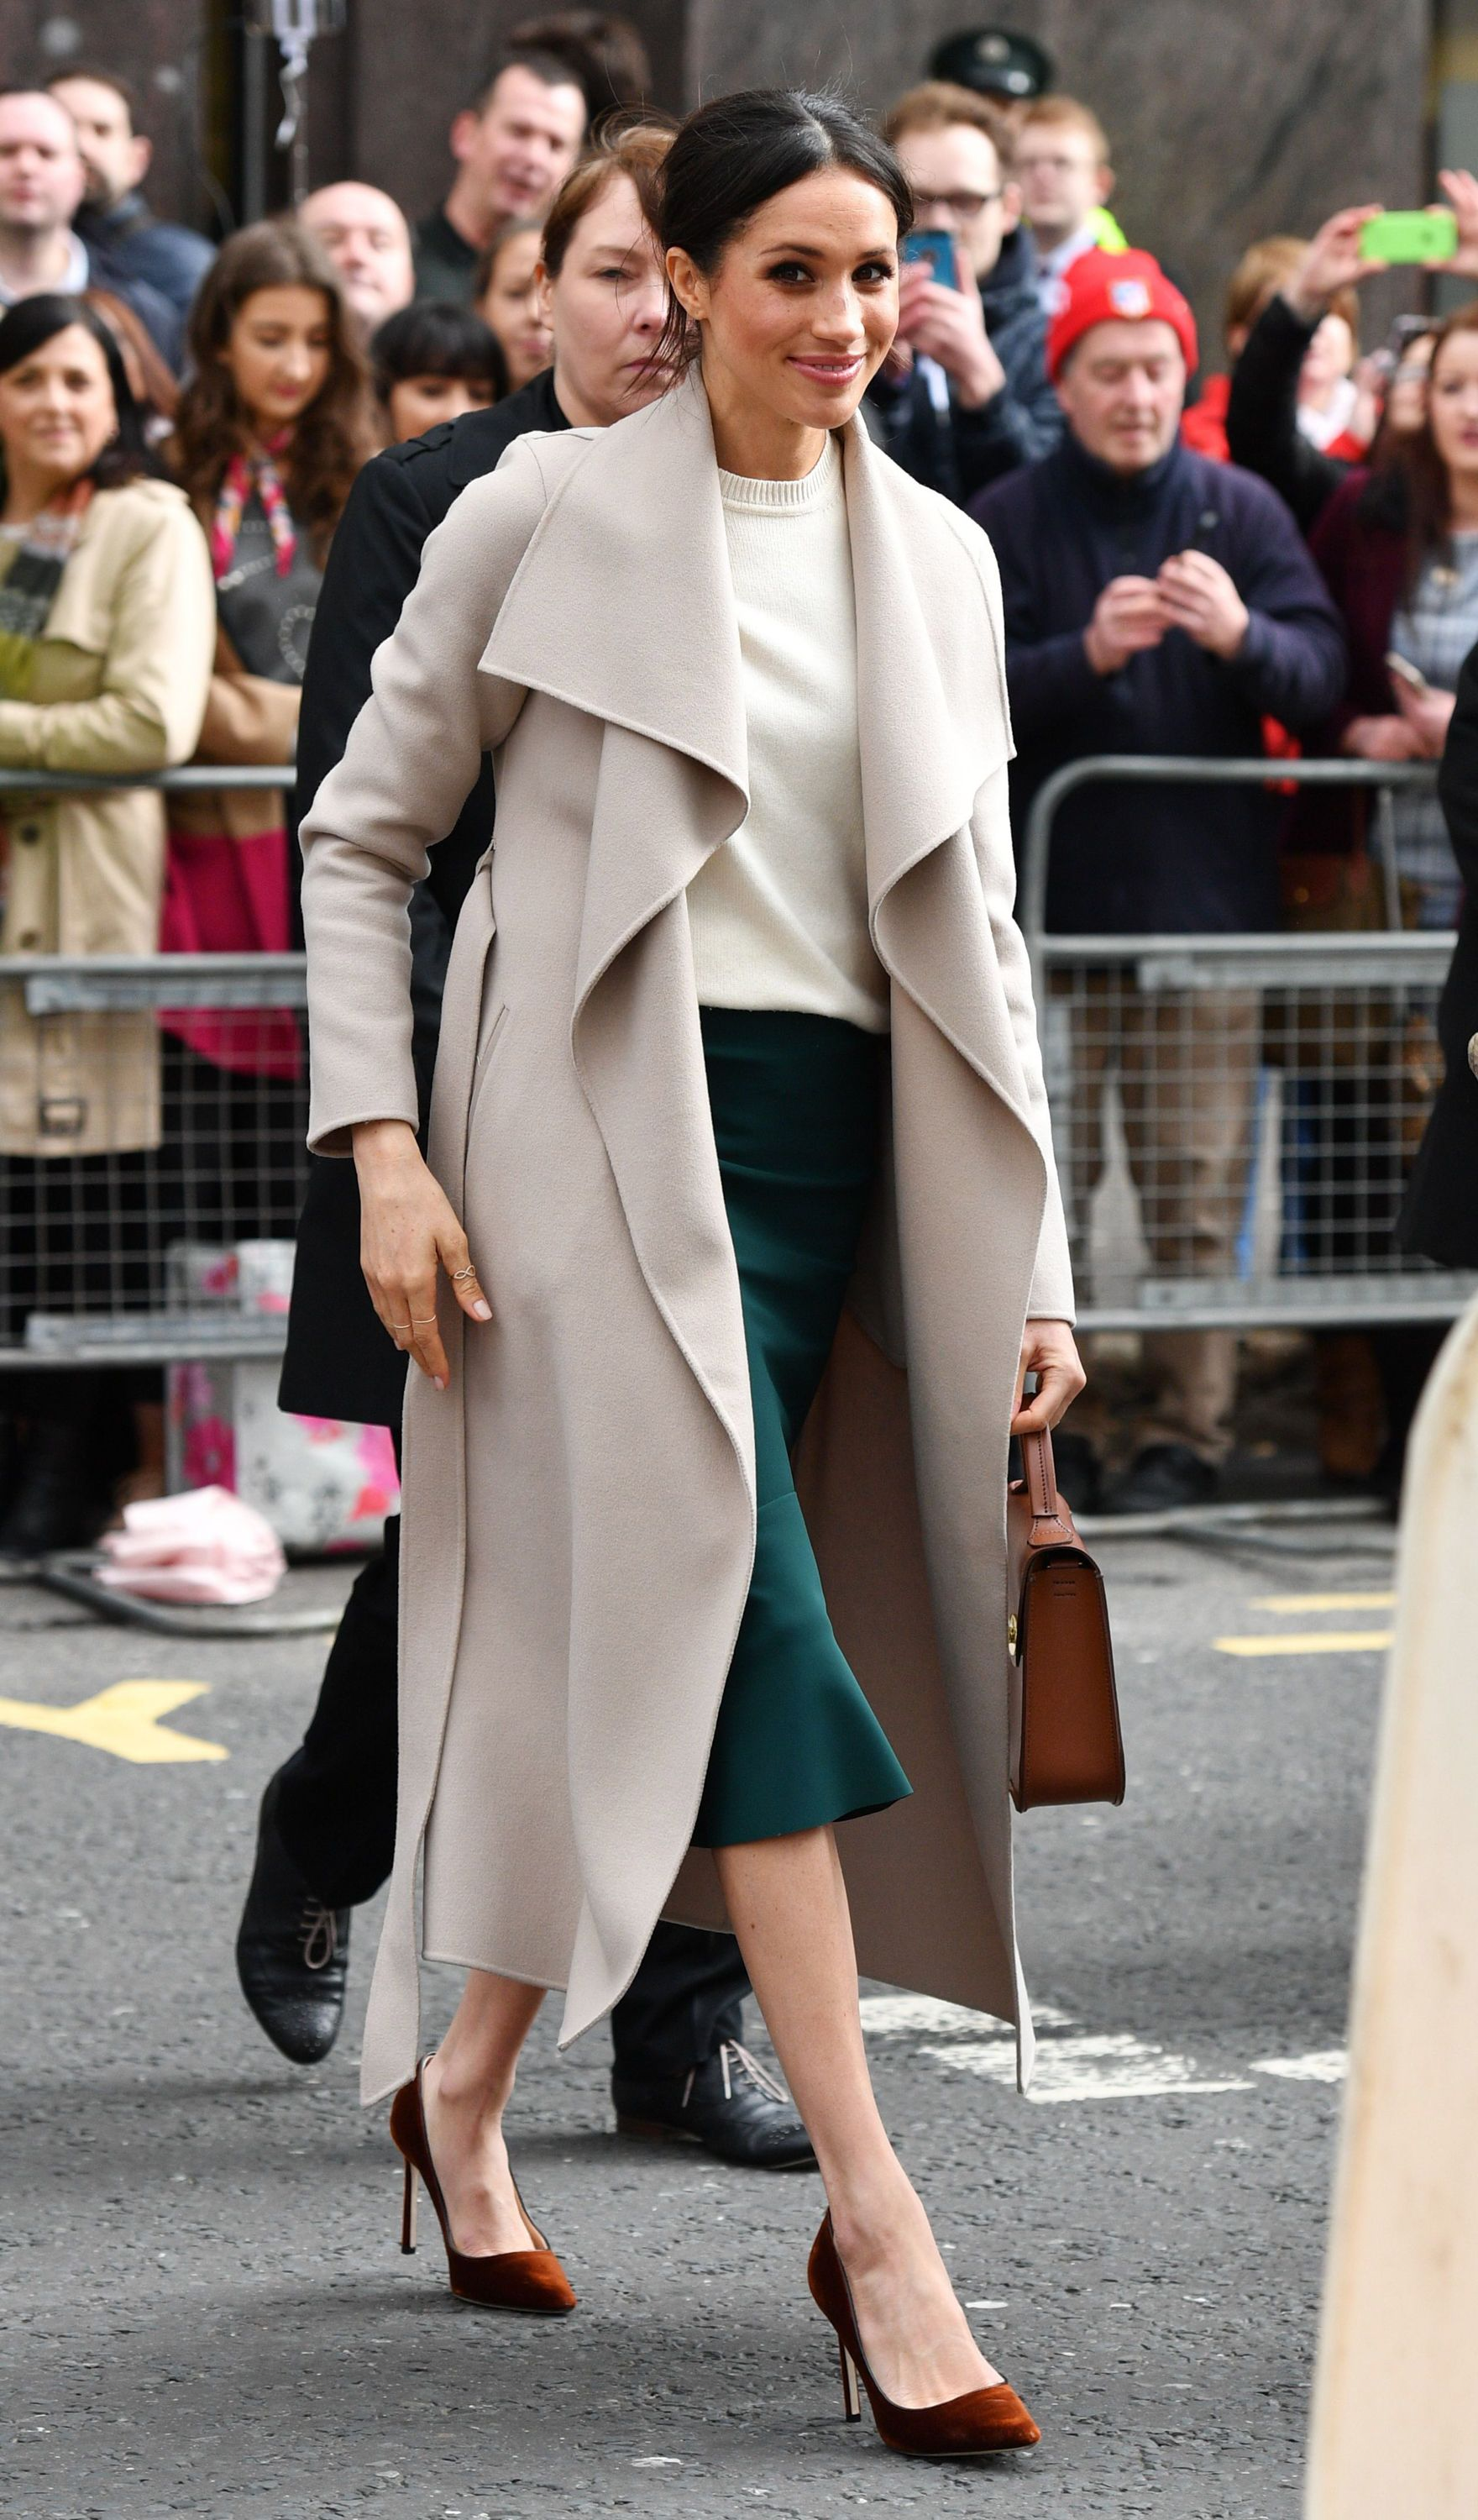 bc7c1215ed652 Meghan Markle's Favorite Shoes - 8 Shoe Brands That the Duchess of Sussex  Wears Regularly